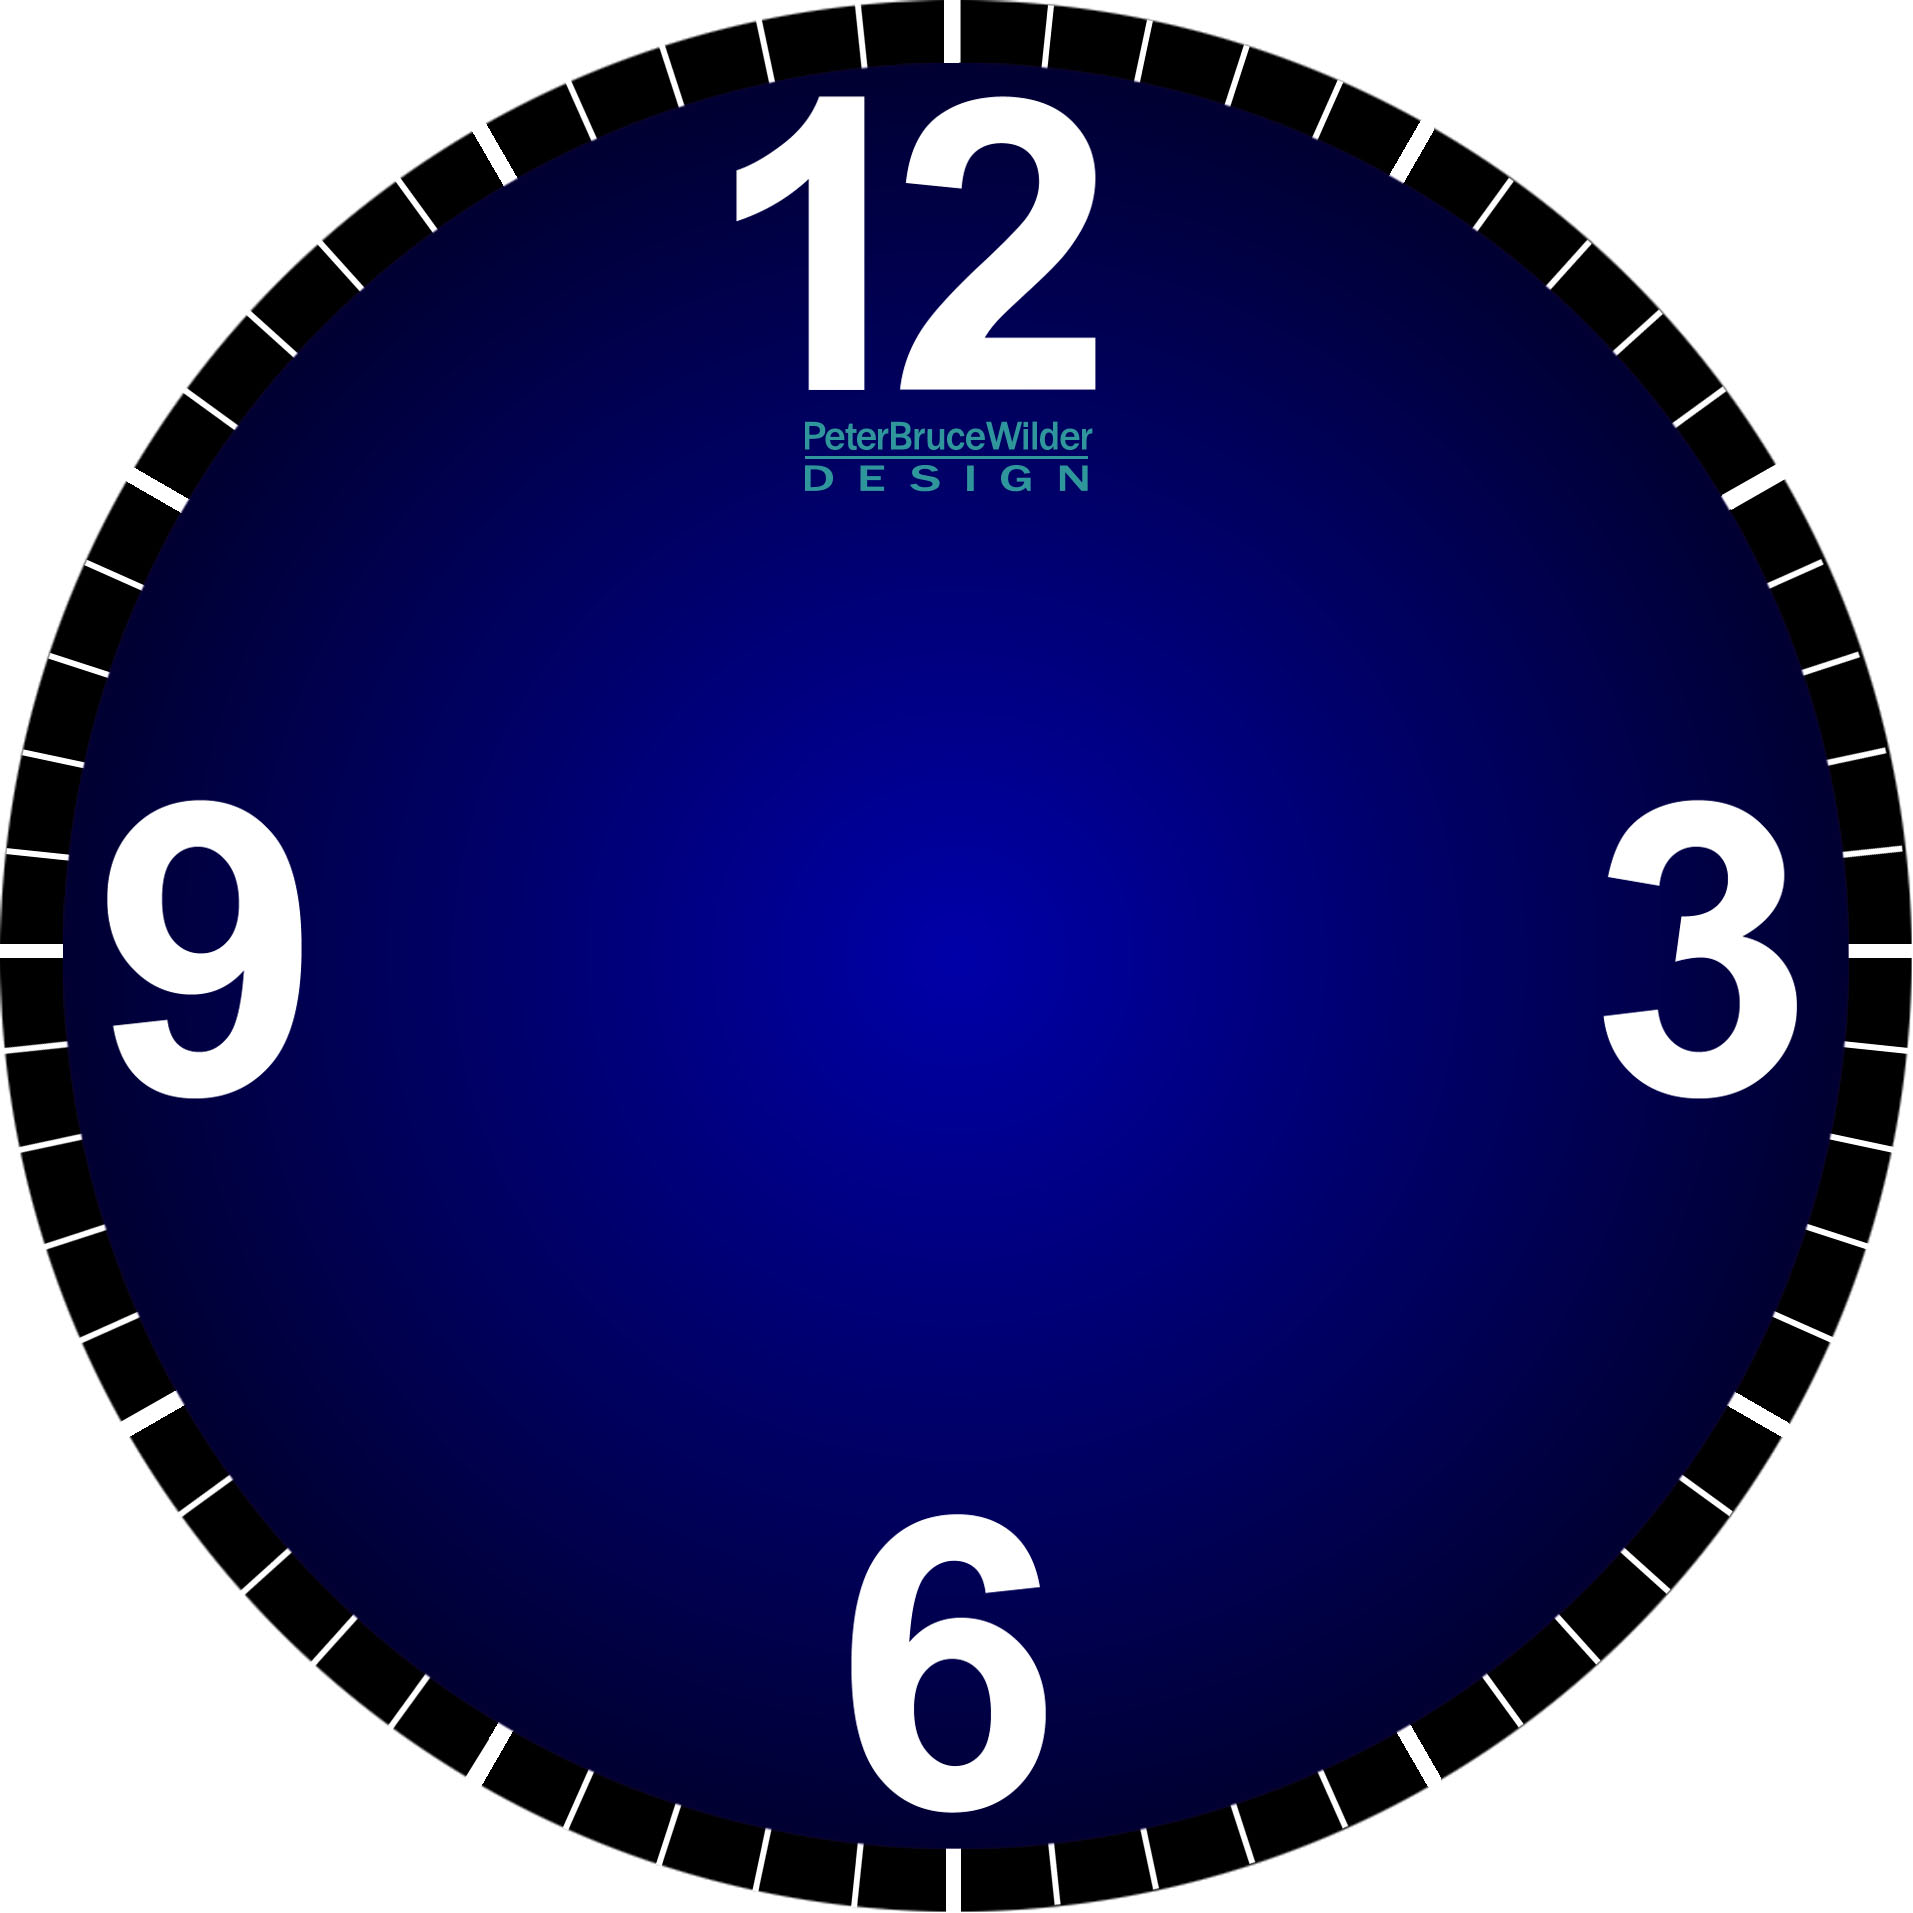 Printable Clock Face Without Hands - ClipArt Best